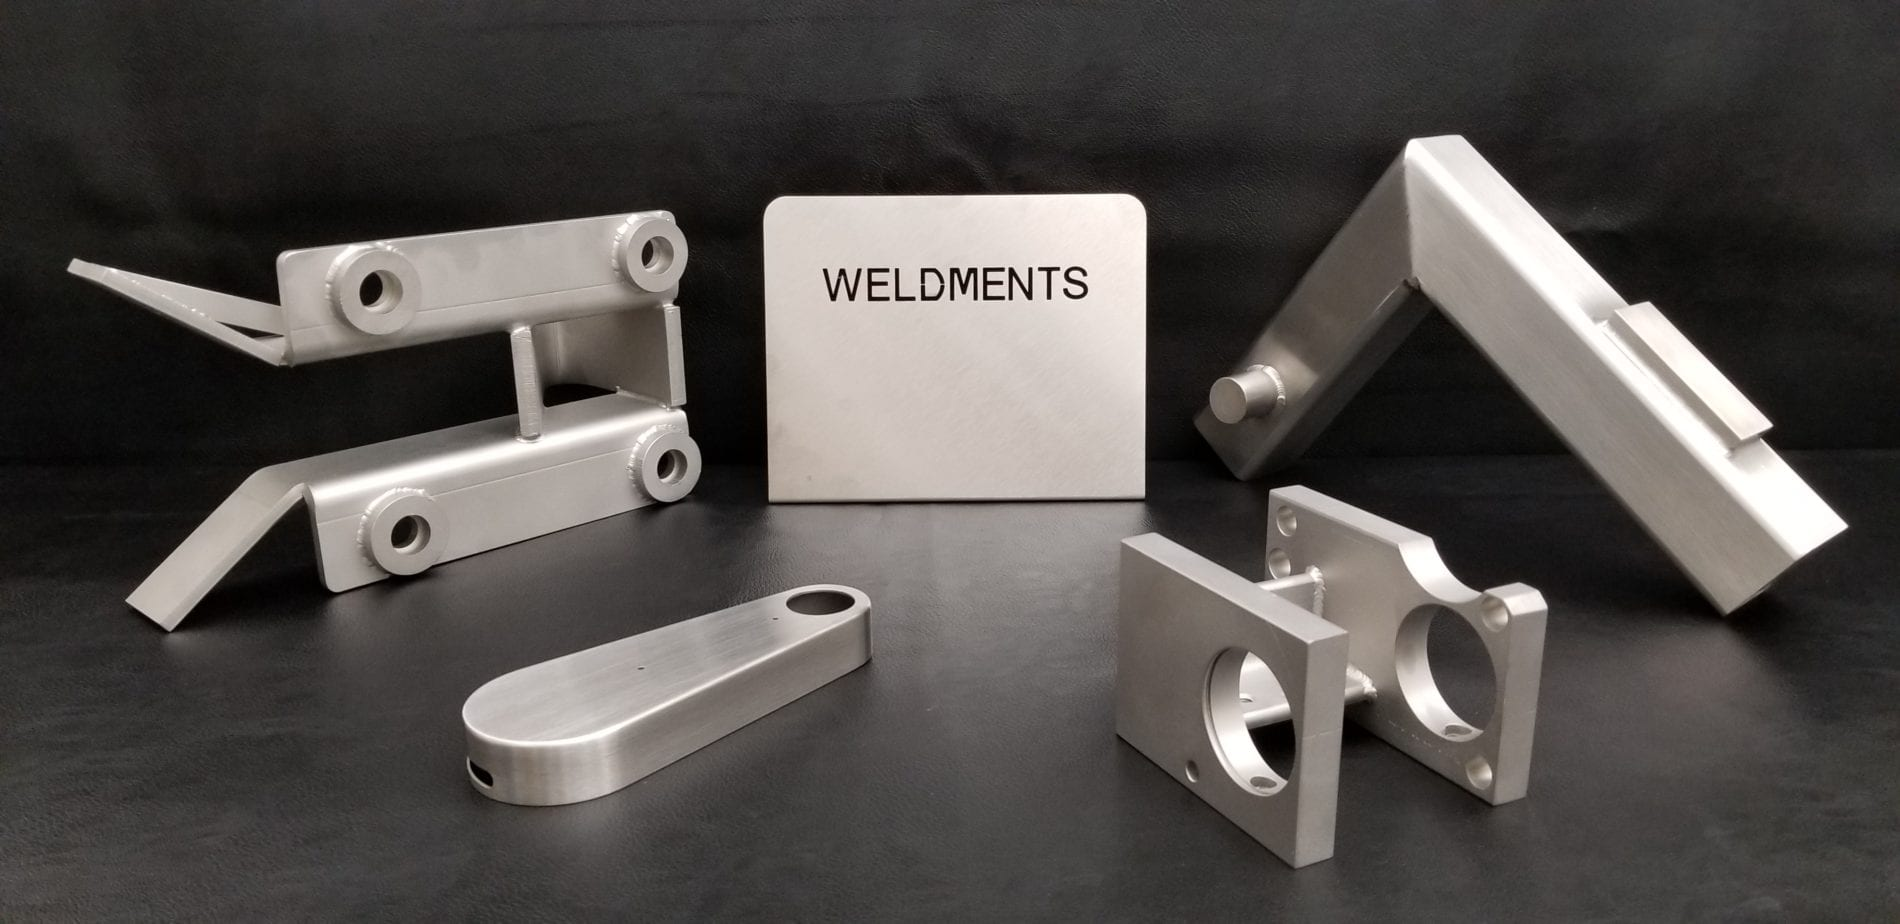 Precision Weldments and Welding in Ohio